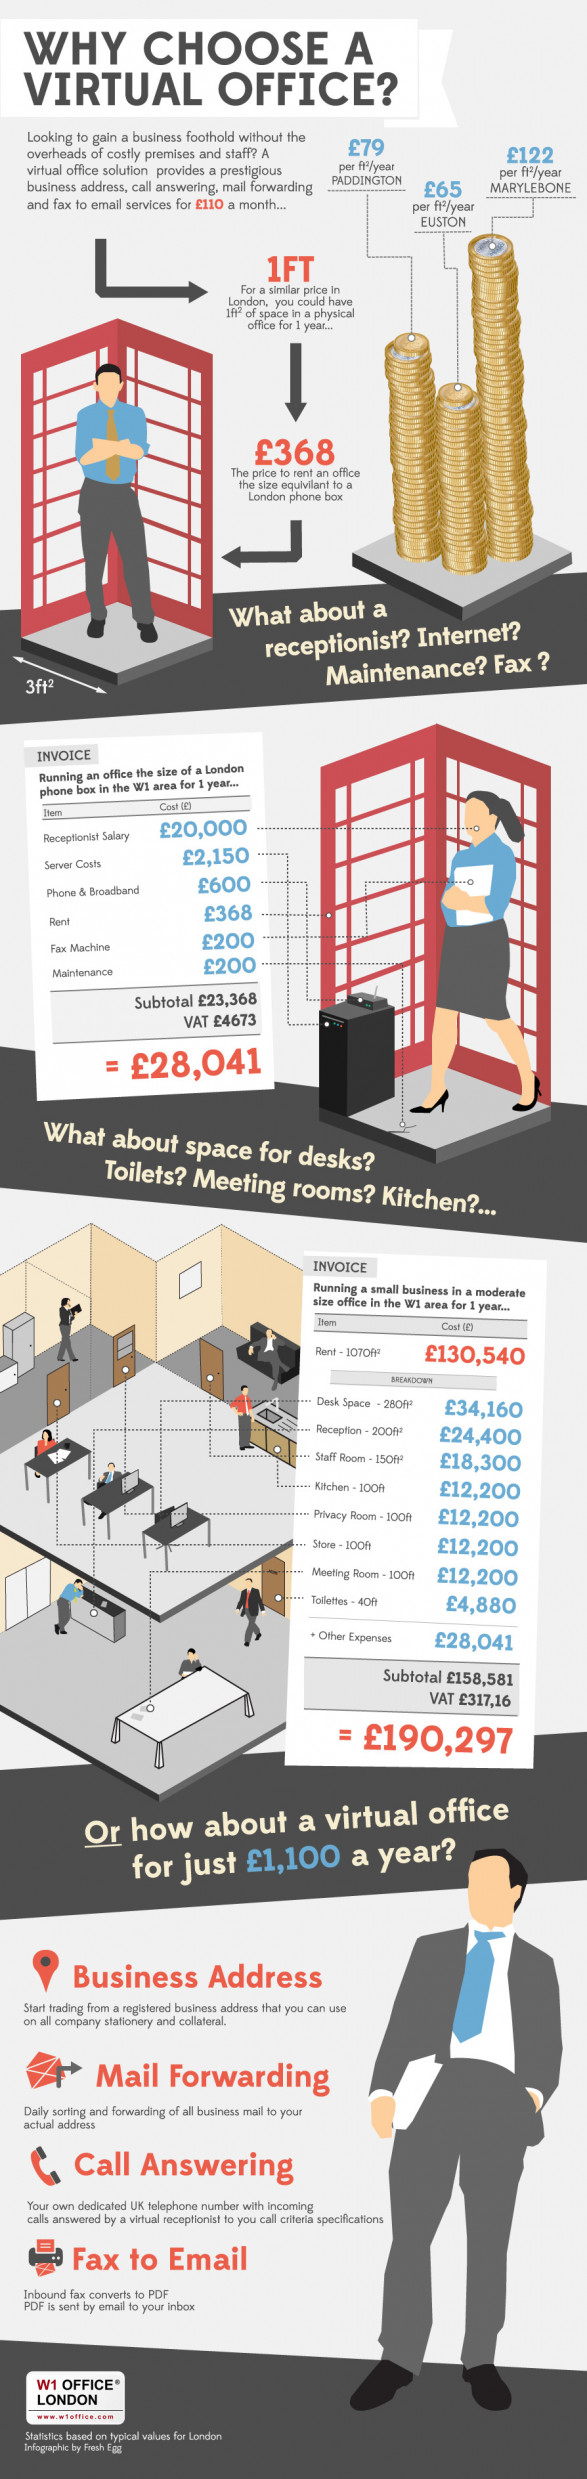 Why Choose a Virtual Office?